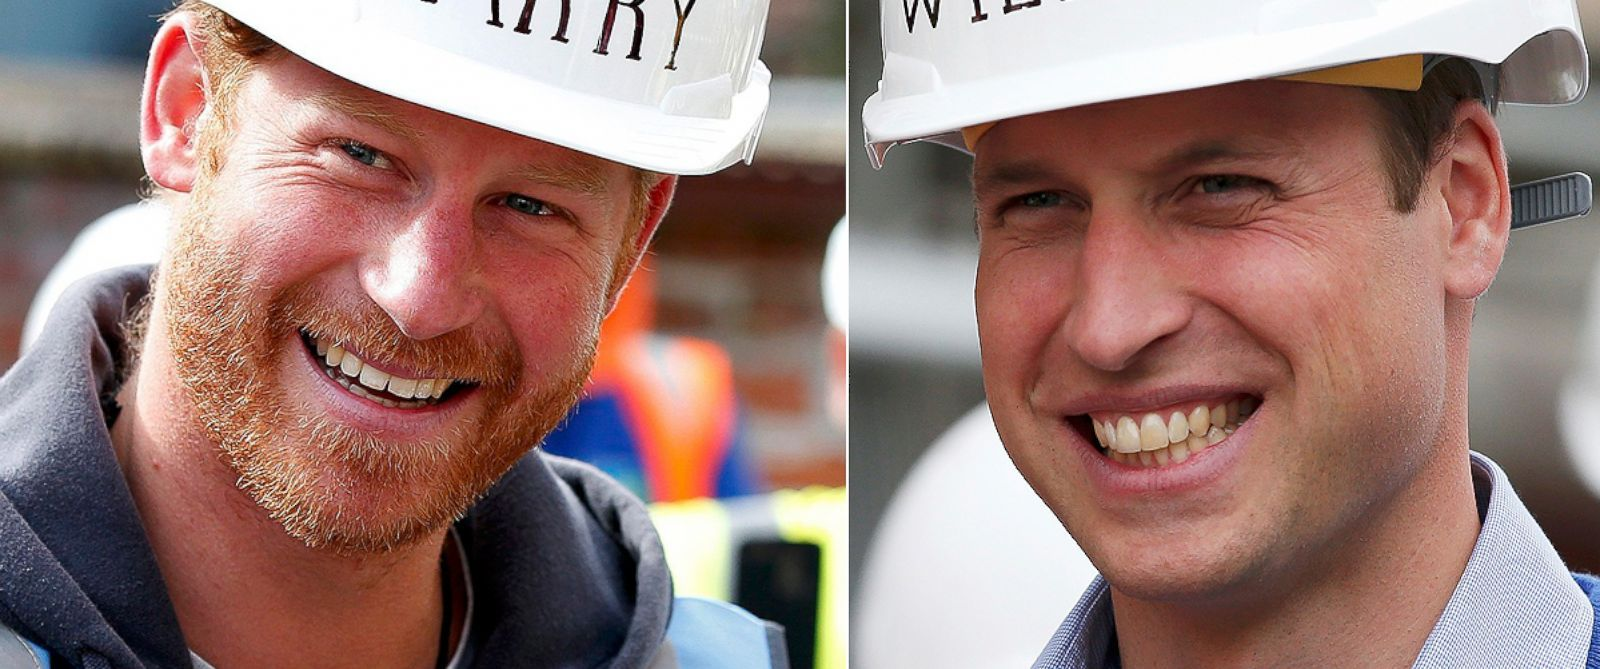 PHOTOPrince William and Prince Harry visited Manchester